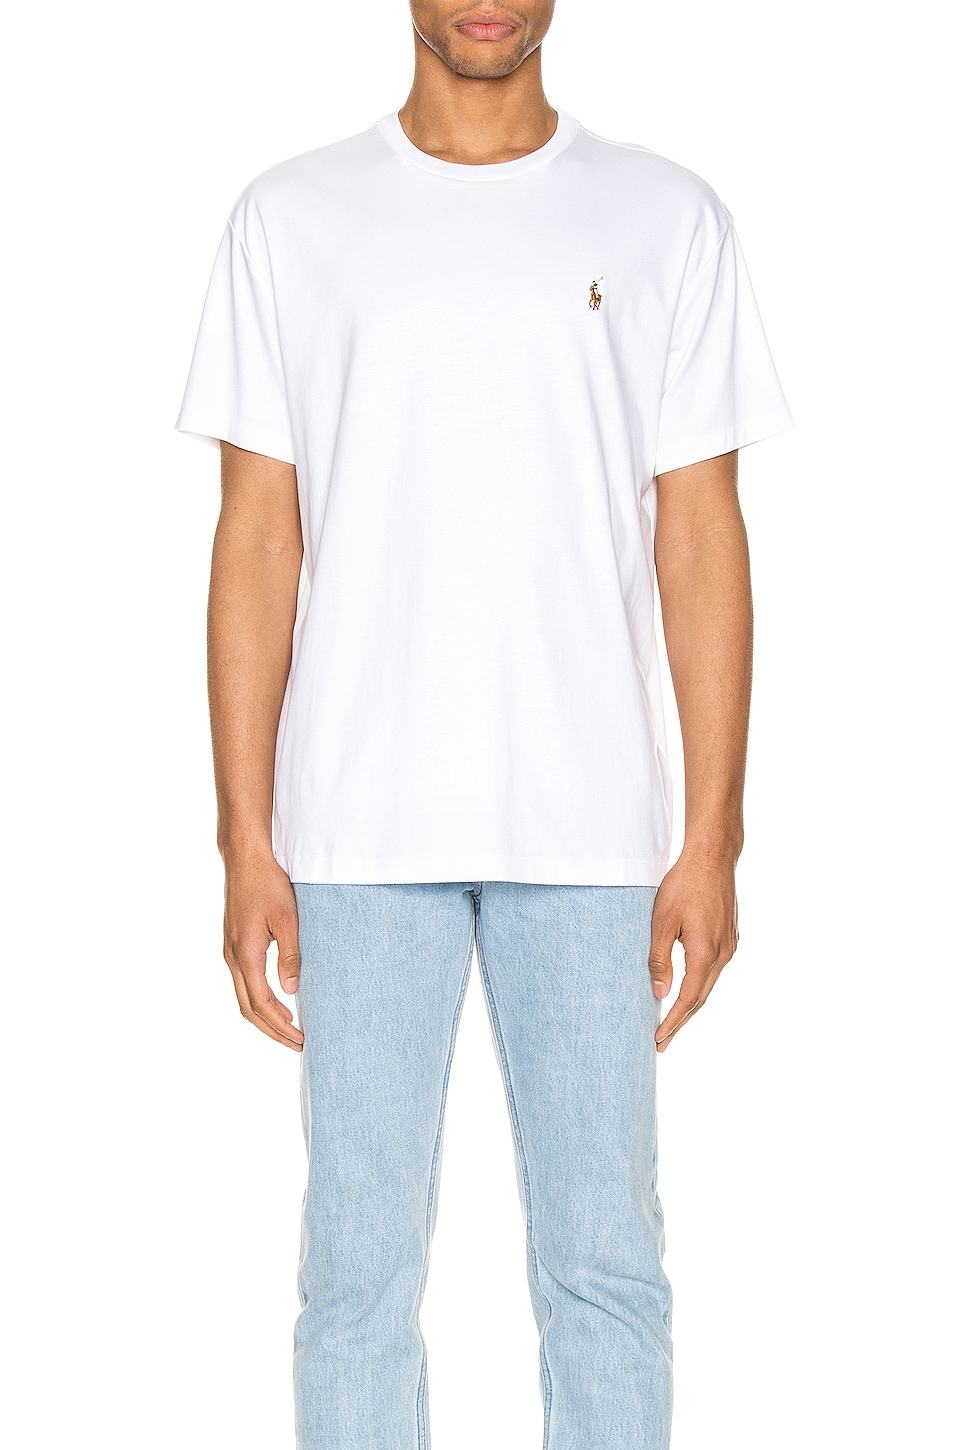 Polo Ralph Lauren Pima Short Sleeve Tee in White